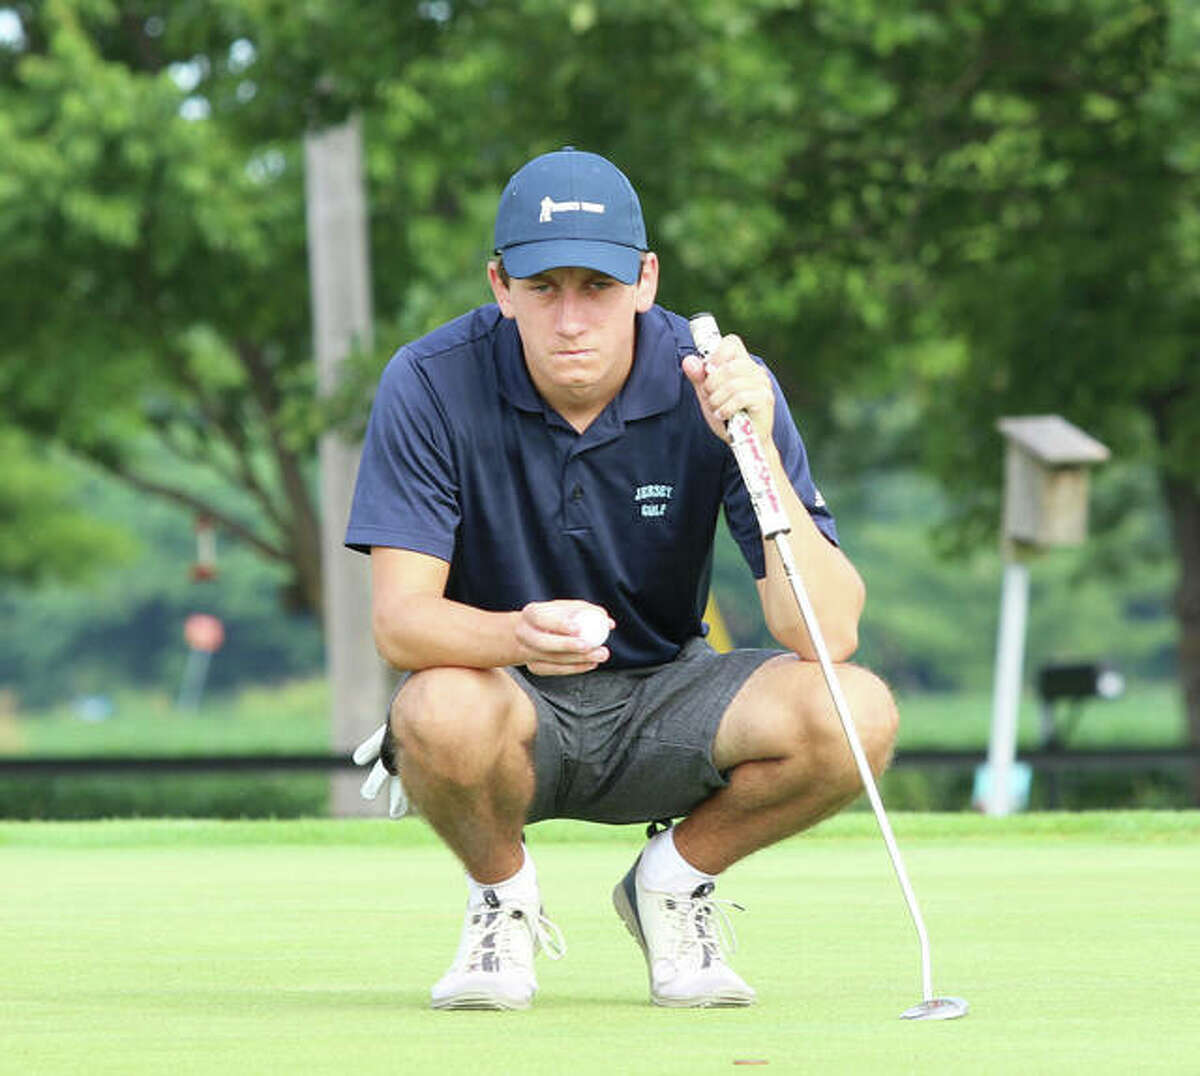 Jersey's Tyler Noble lines up a putt before placing the ball on hole No. 2 at Belk Park in the Hickory Stick Tourney at Aug. 16 in Wood River. Noble was back at Belk for the MVC Tourney on Wednesday and shot 79 to tie teammate Mason Seymour for fourth place.